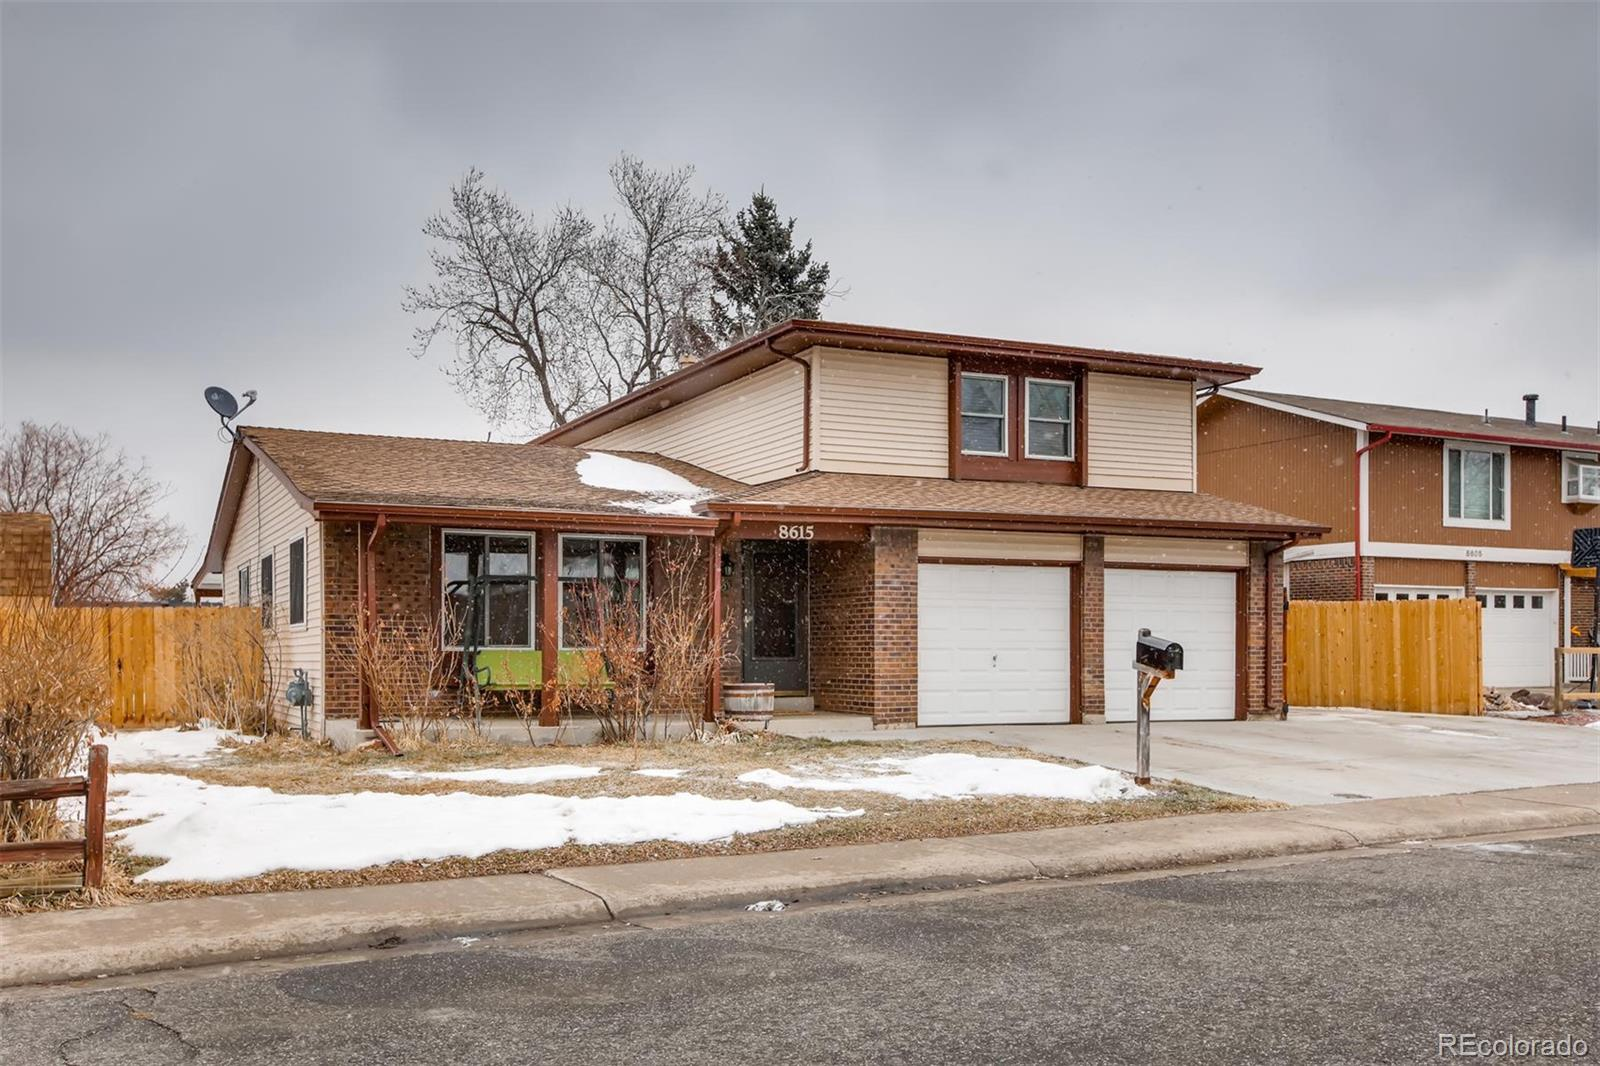 MLS# 2991178 - 1 - 8615 W 78th Place, Arvada, CO 80005